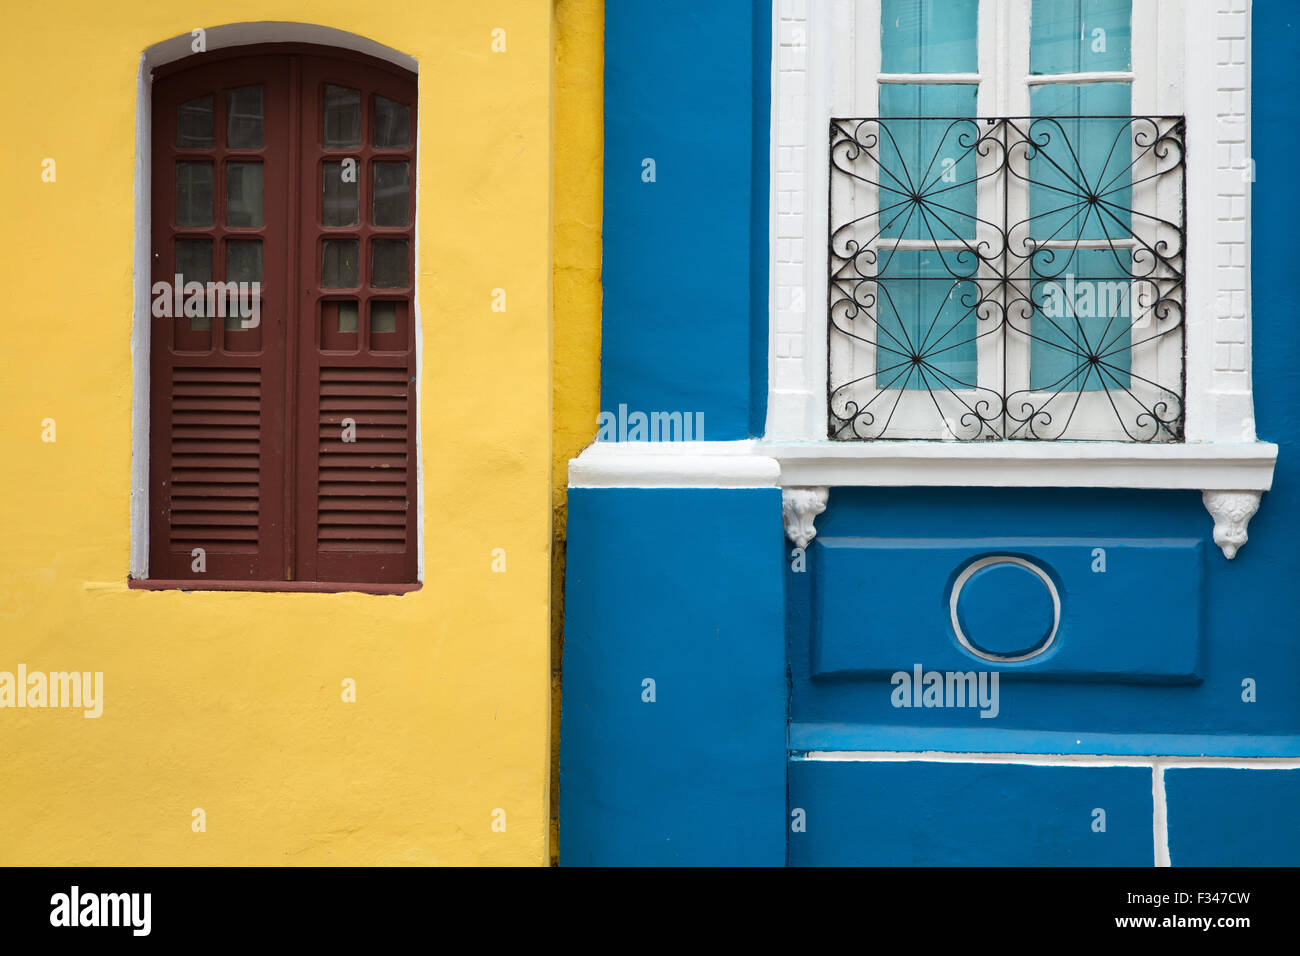 colonial architecture in the Old Town, Salvador da Bahia, Brazil - Stock Image